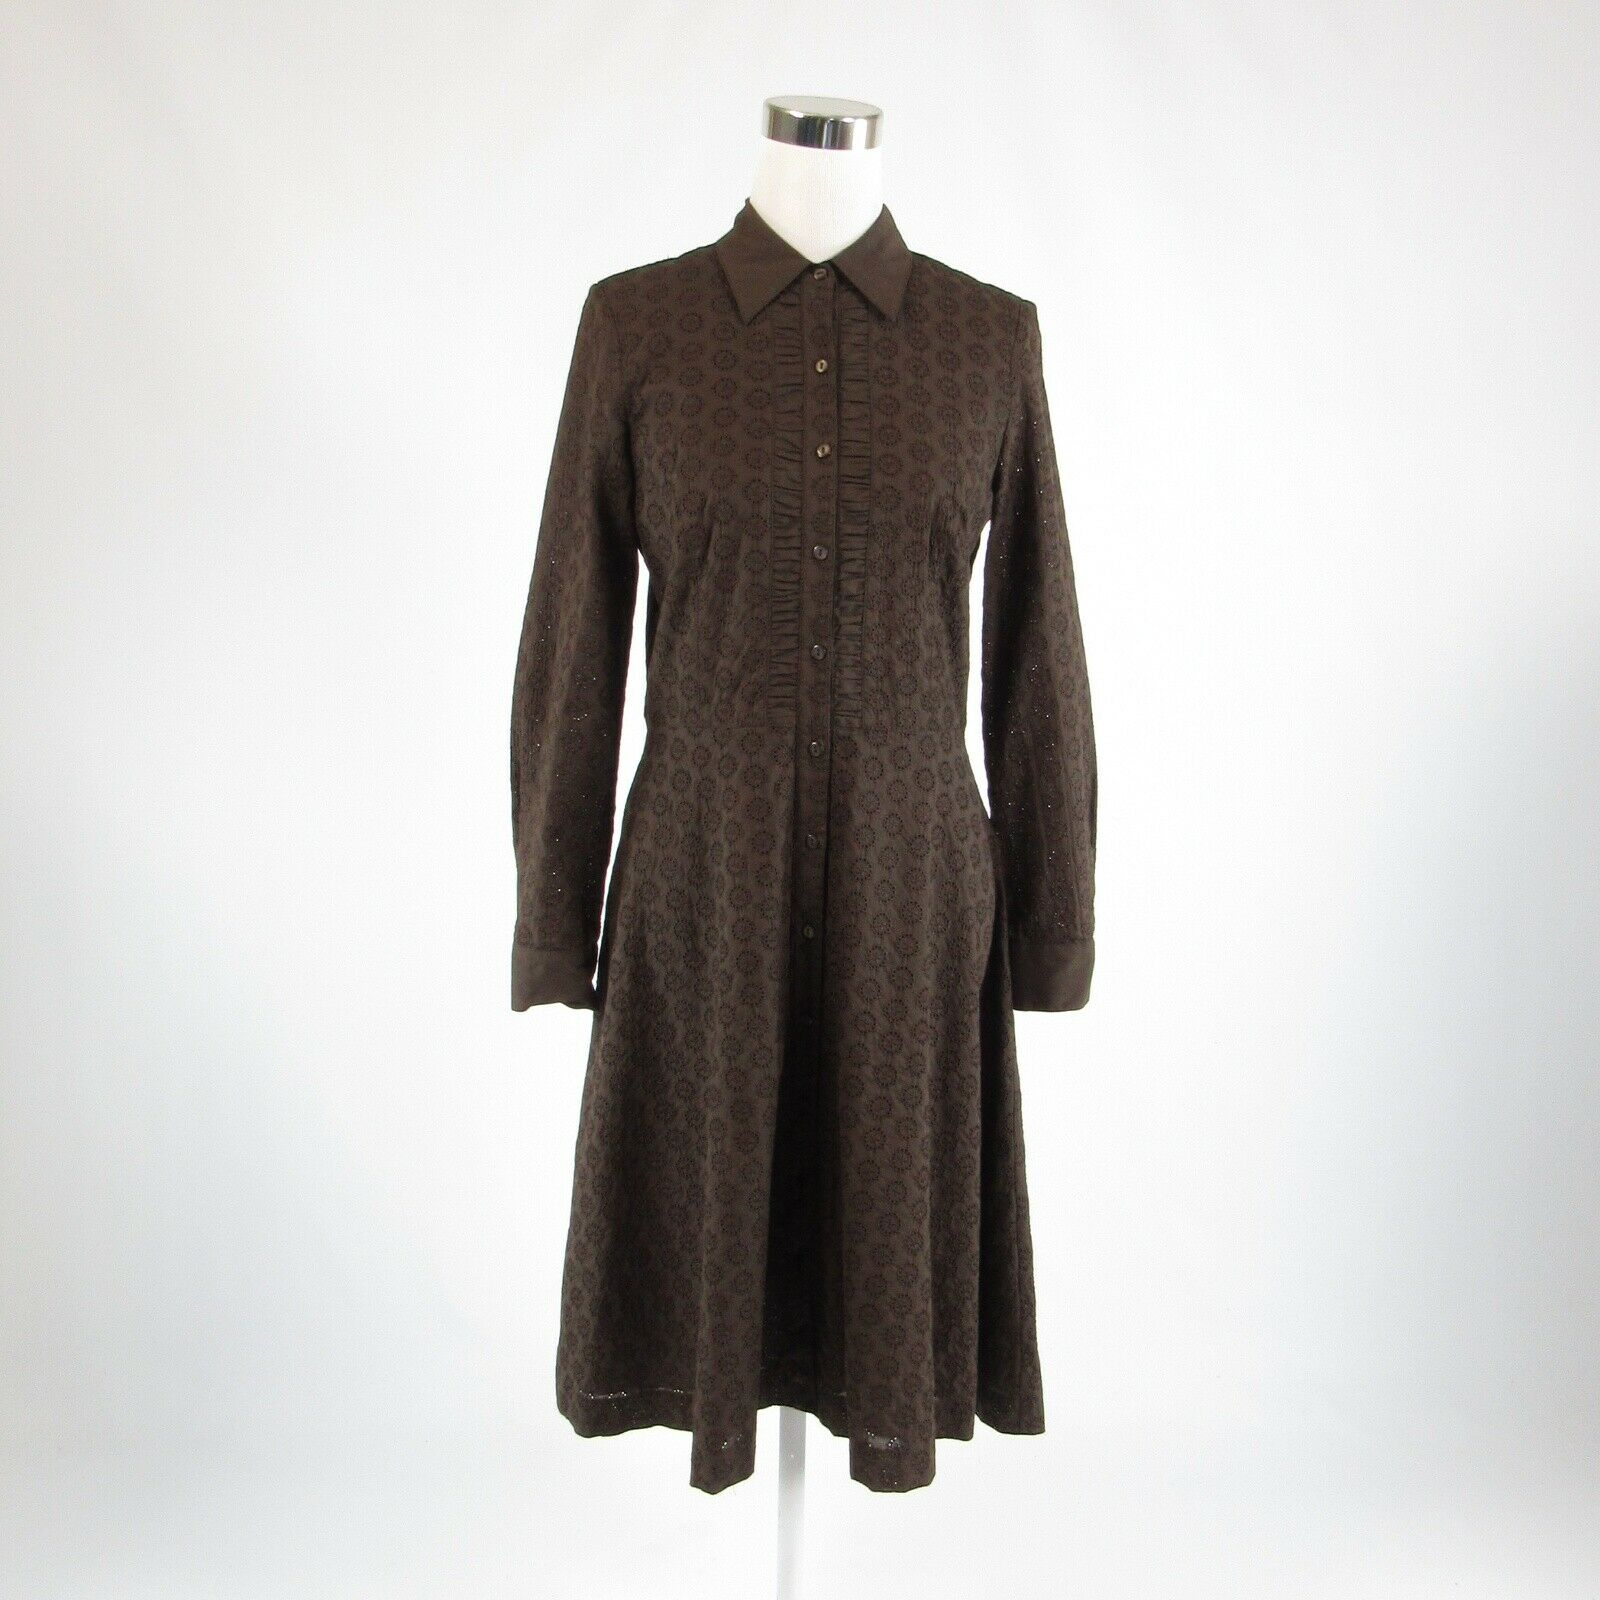 Brown eyelet NEIMAN MARCUS EXCLUSIVE embroidered trim long sleeve A-line dress 4